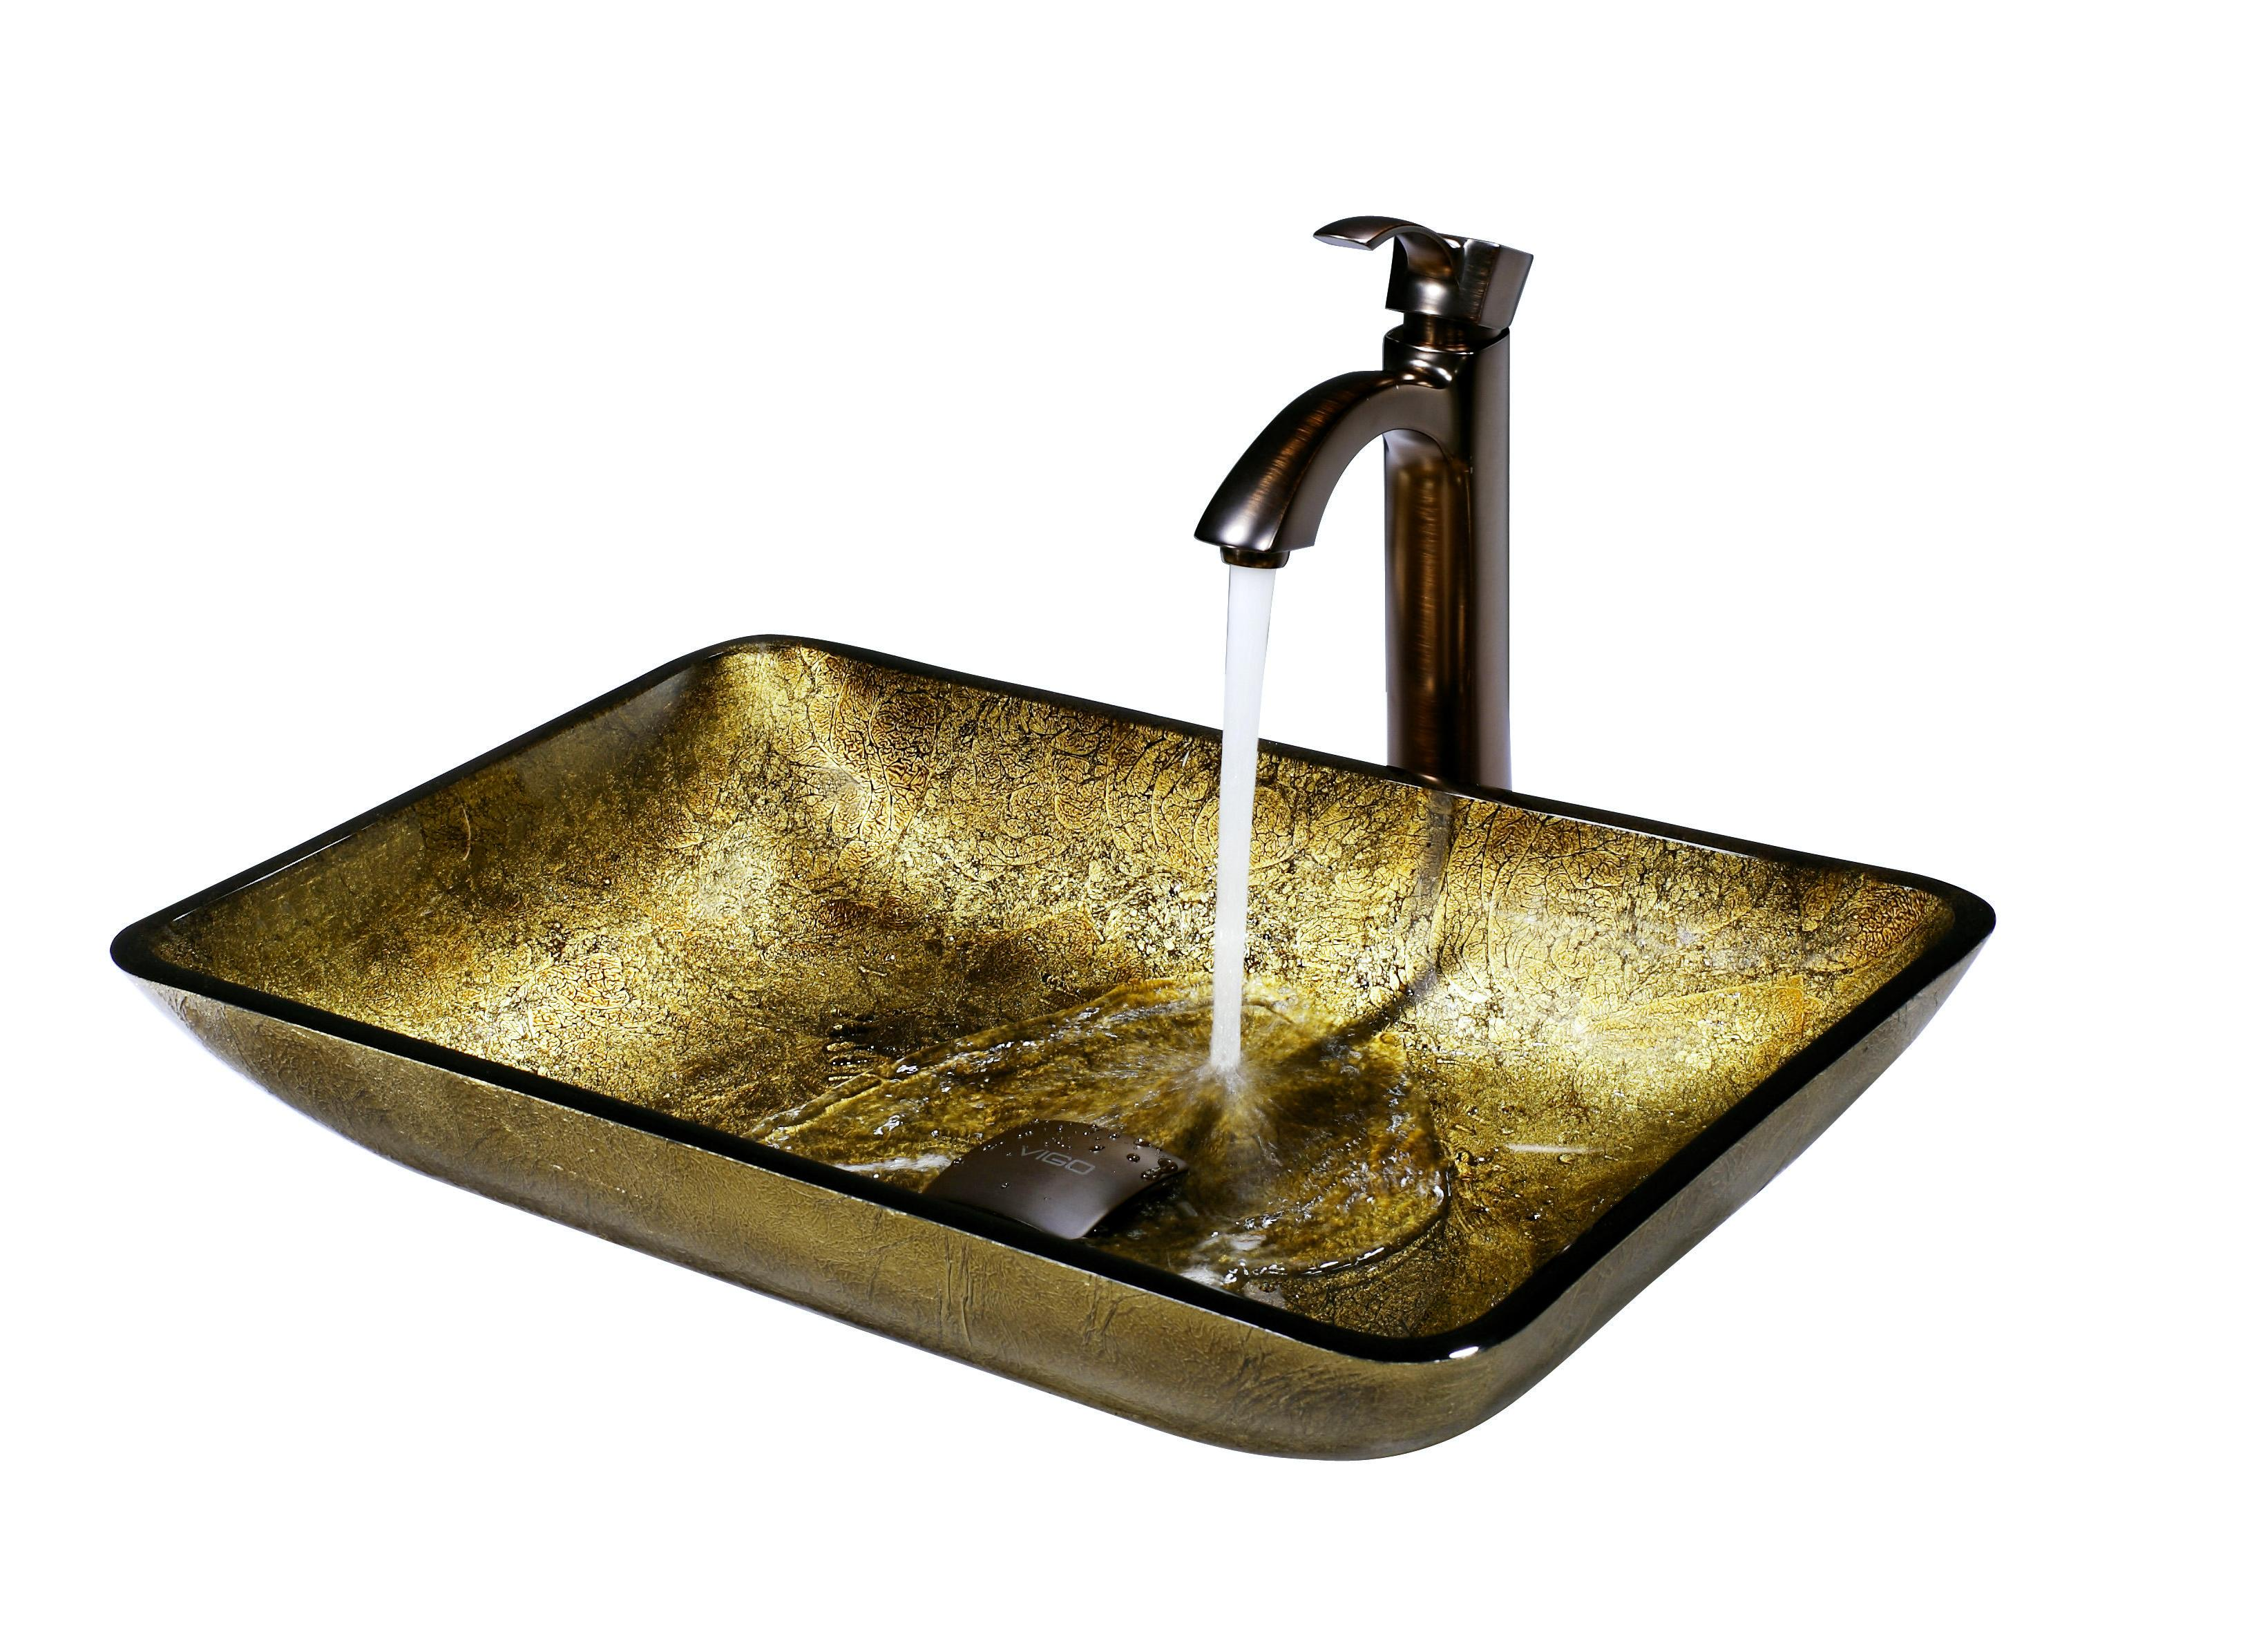 Bronze Vessel Sink : Copper Glass Vessel Sink and Faucet Set in Oil Rubbed Bronze ...